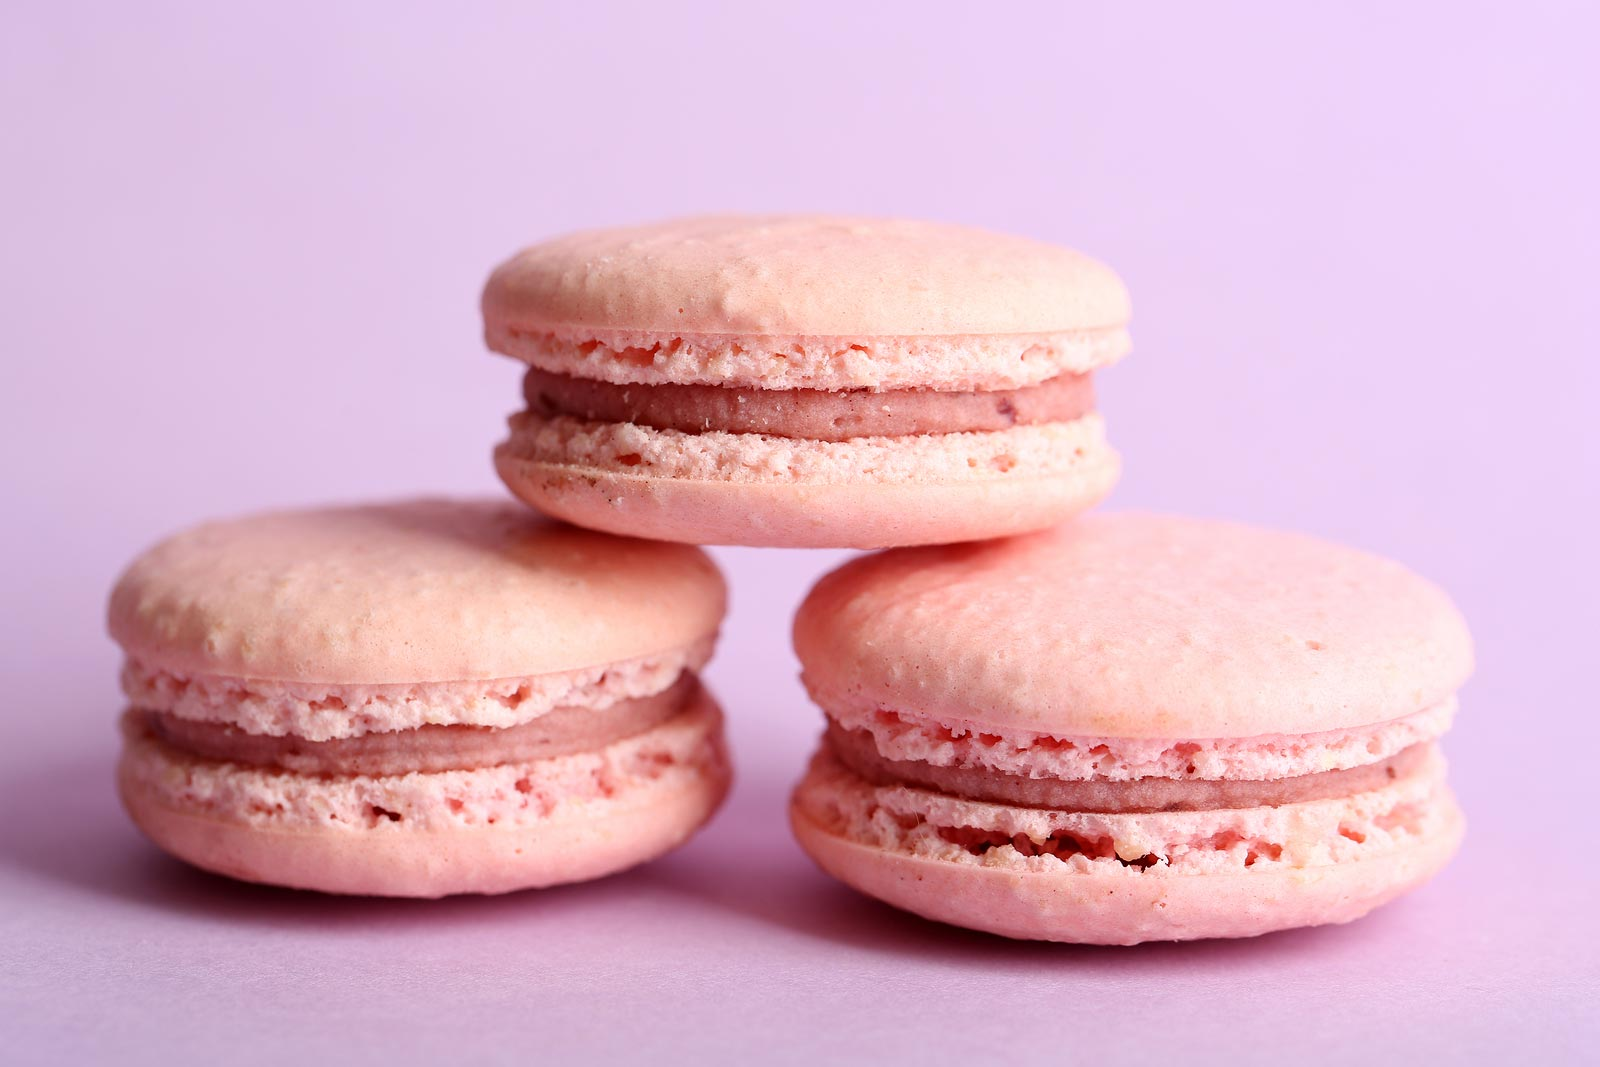 bigstock-Gentle-colorful-macaroons-on-c-77066807